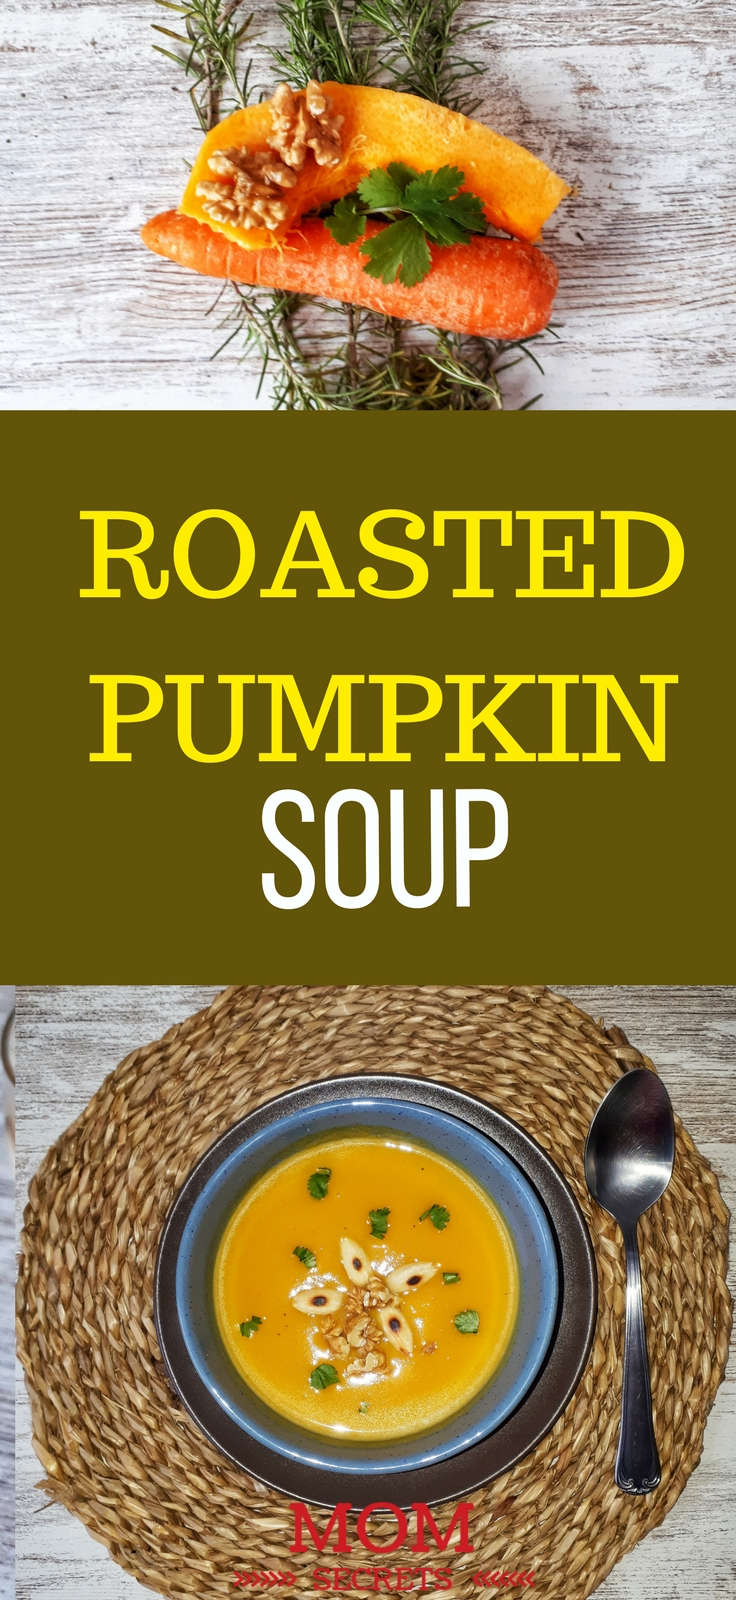 Roasted pumpkin soup is glúten-free, dairy-free, vegan, low carb, paleo and keto recipe. Easy to make and also healthy; it is a perfect appetizer or a perfect meal.